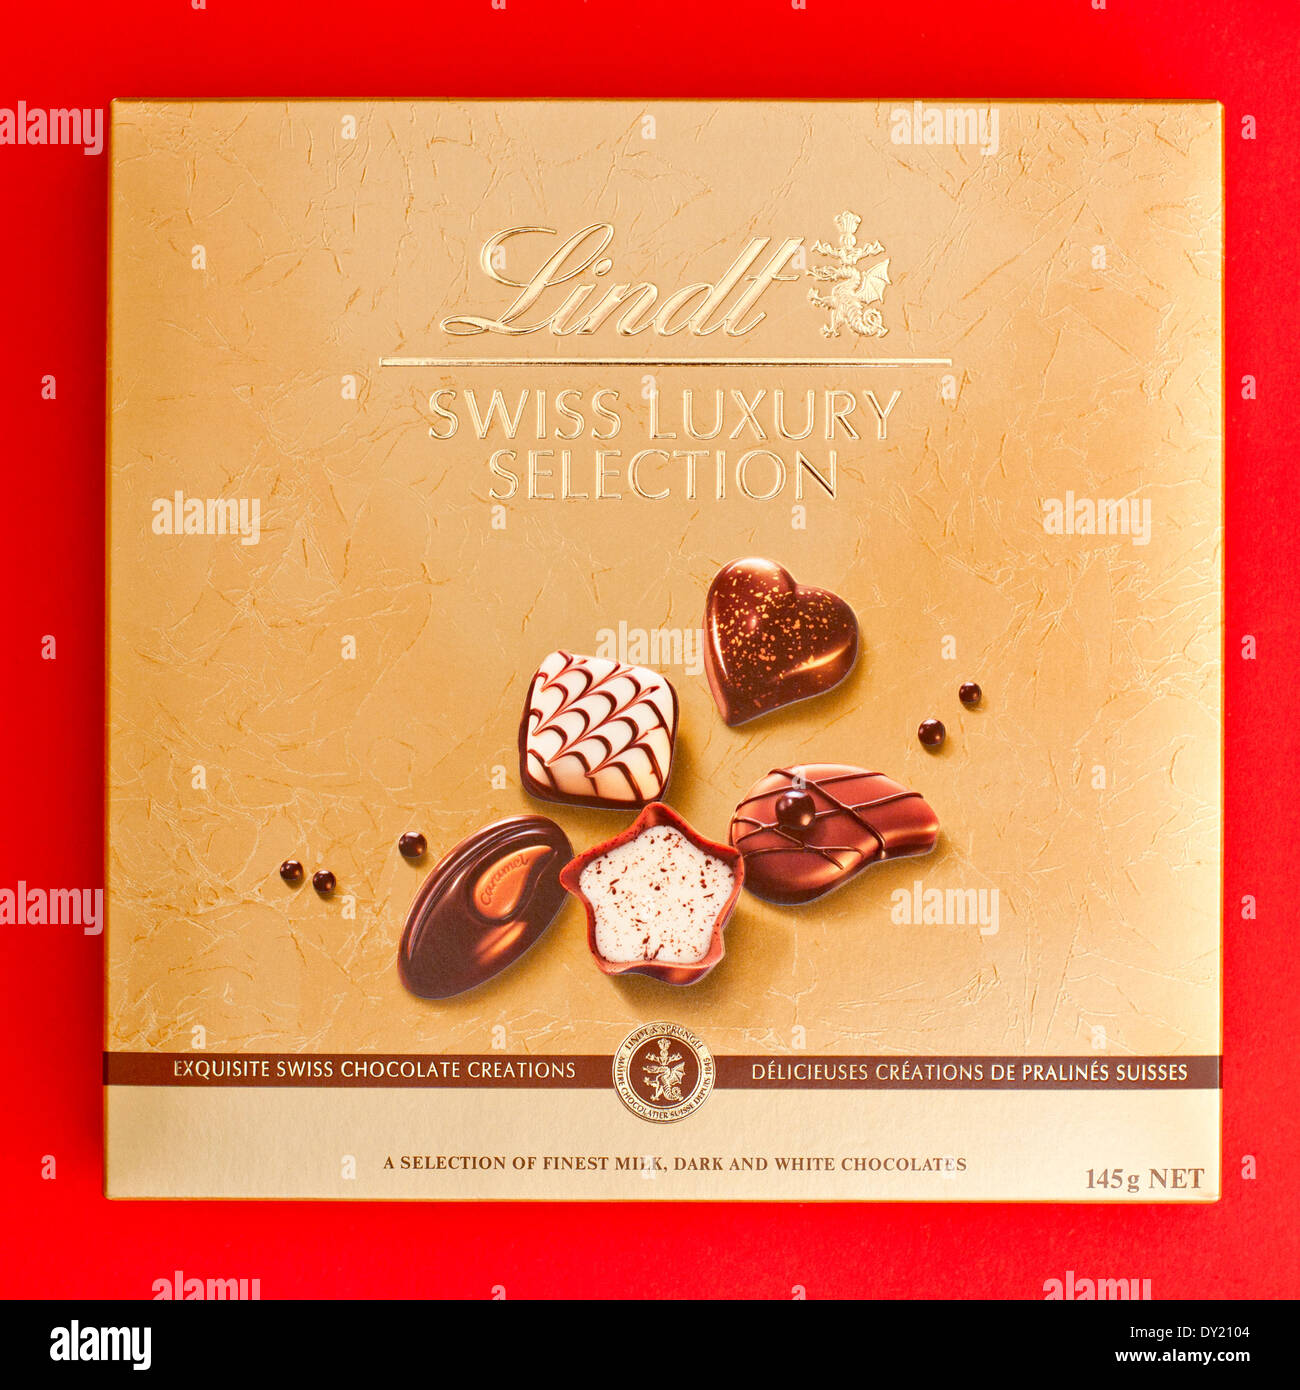 Royalty free stock photo of selection of Lindt's chocolate red box. - Stock Image